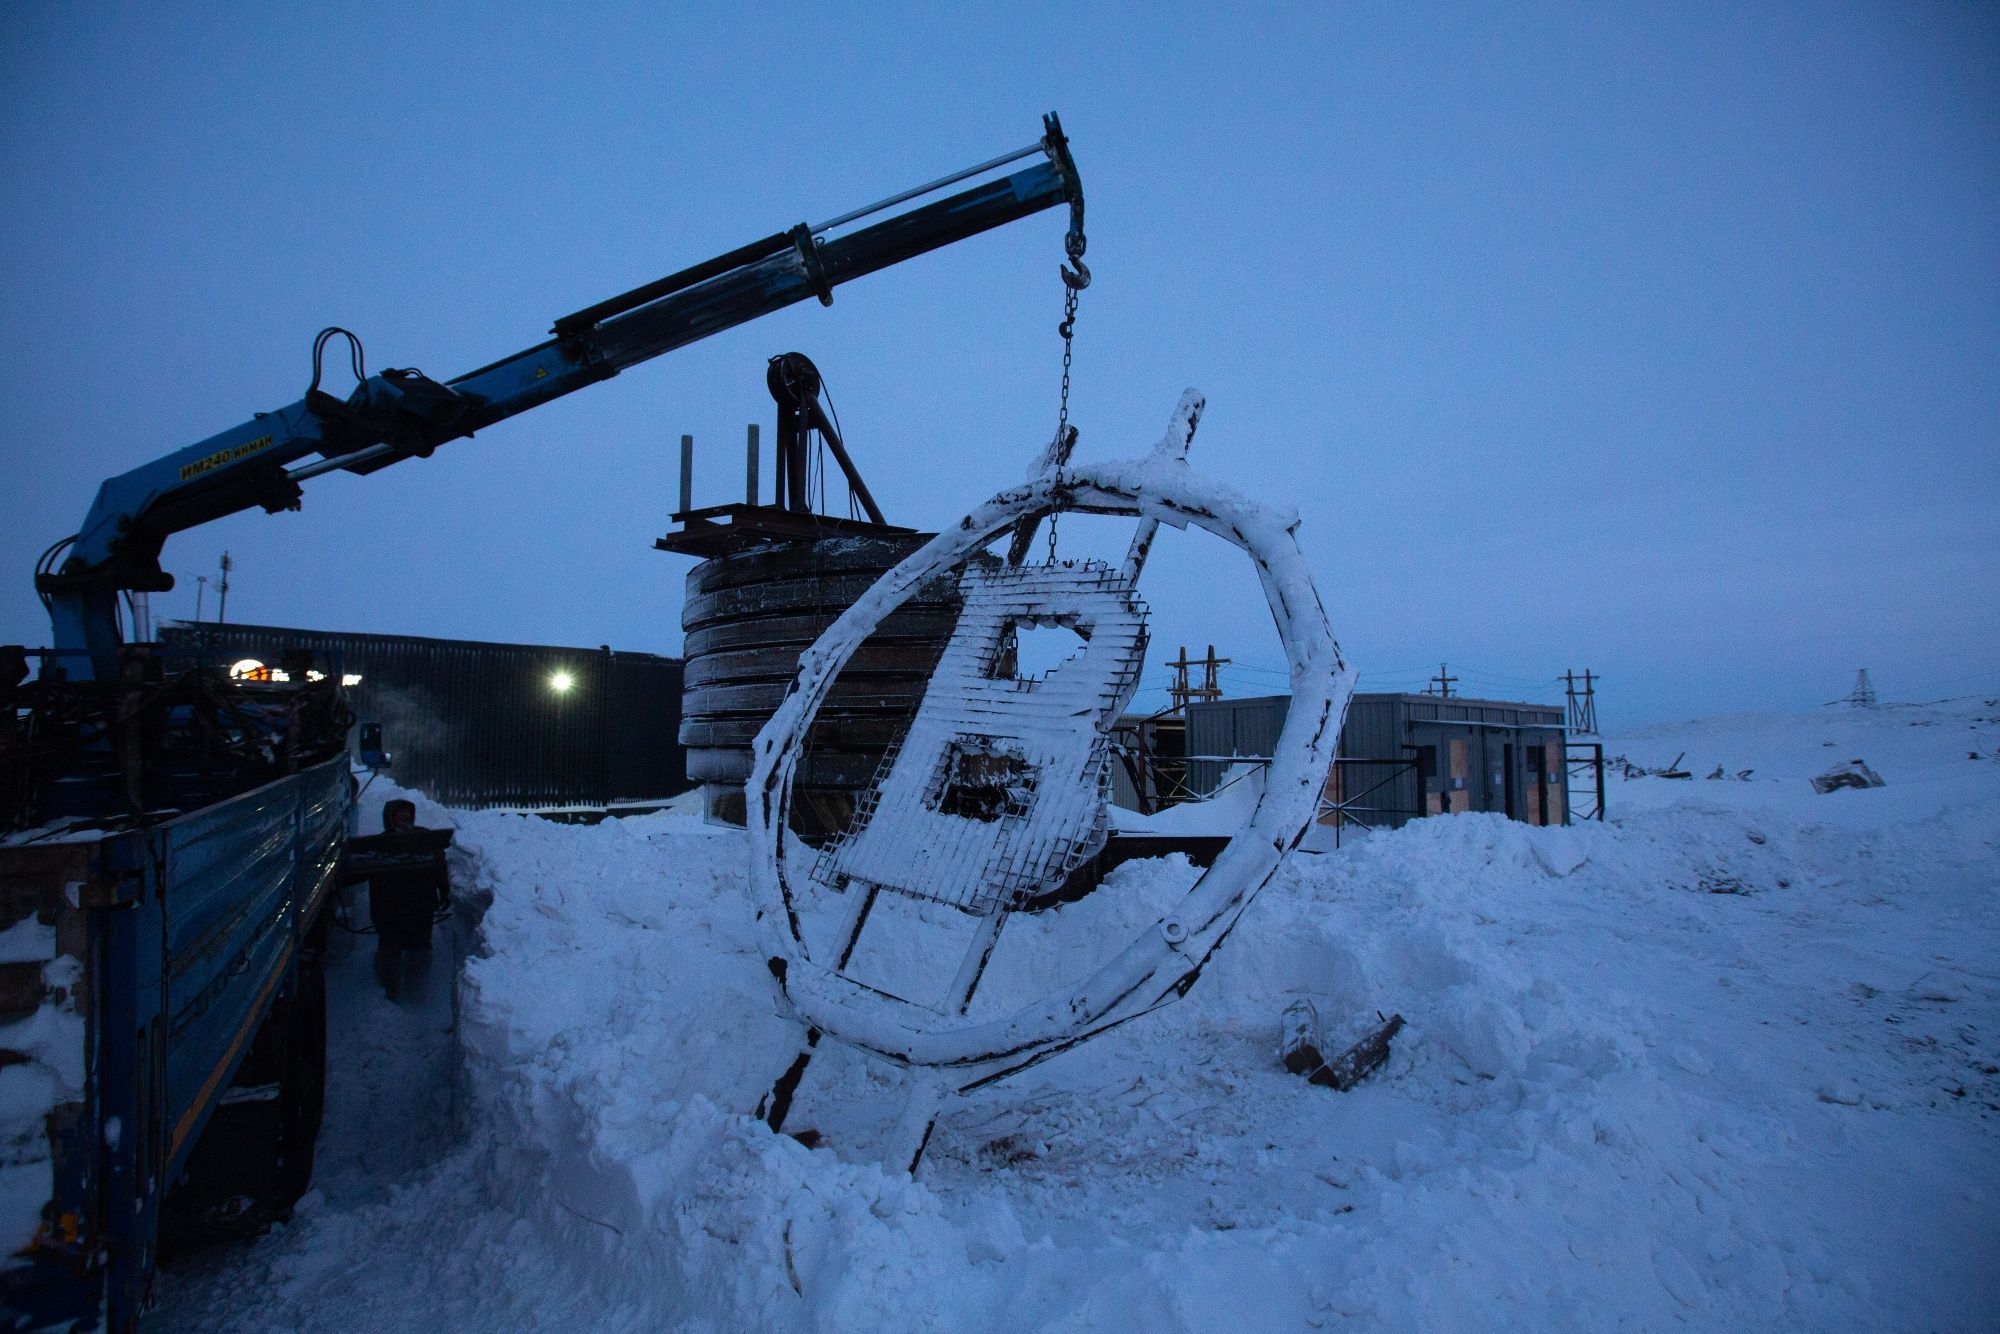 A crane arm lifts a bitcoin sculpture made from scrap metal as it is installed outside the BitCluster cryptocurrency mining farm in Norilsk, Russia, on Sunday, Dec. 20, 2020. Norilsk may soon be famous for a different type of mining — it now hosts the Arctic's first crypto farm for producing new Bitcoins. Photographer: Andrey Rudakov/Bloomberg